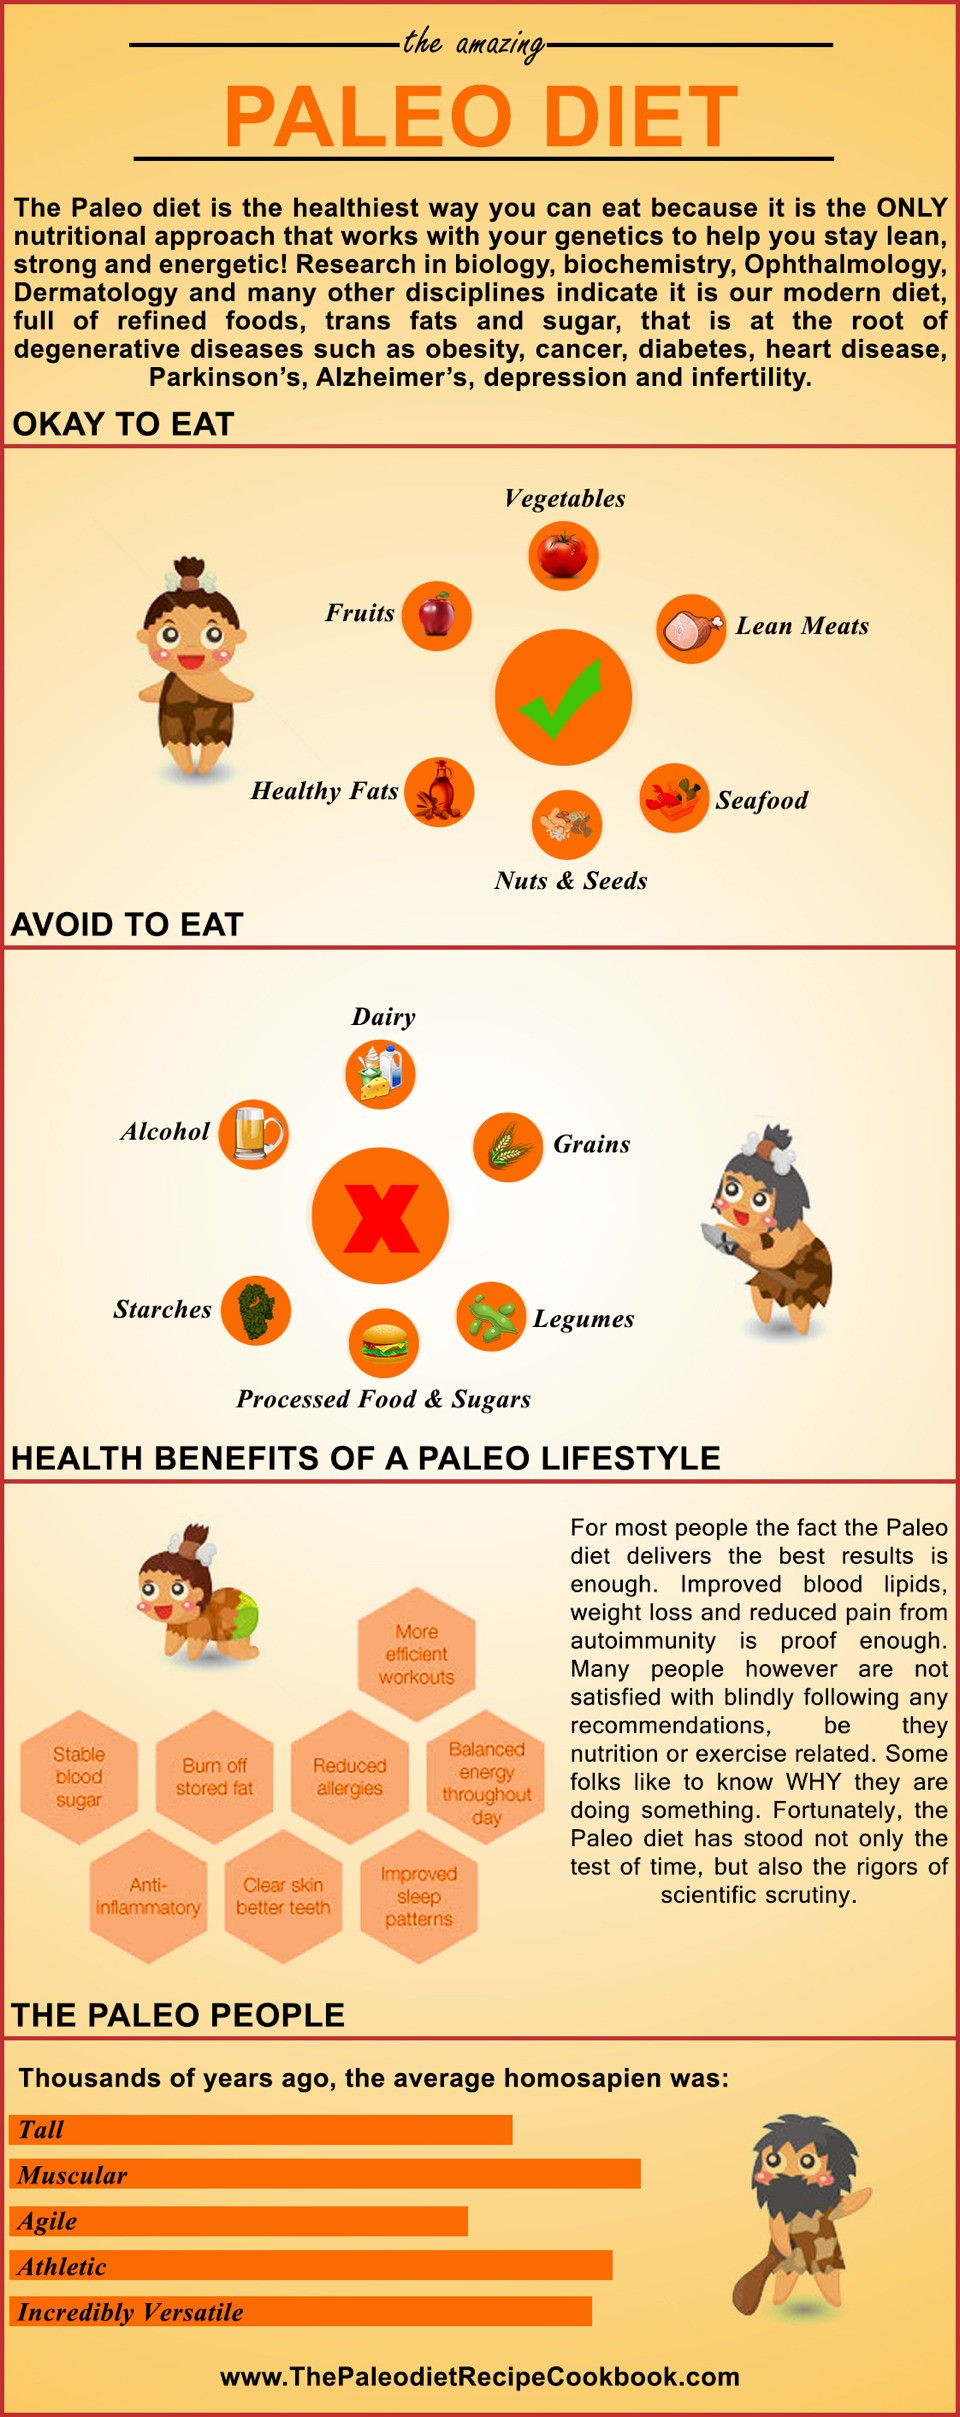 Paleo Diet Benefits  The Paleo Diet Has Many Health Benefits Including Weight